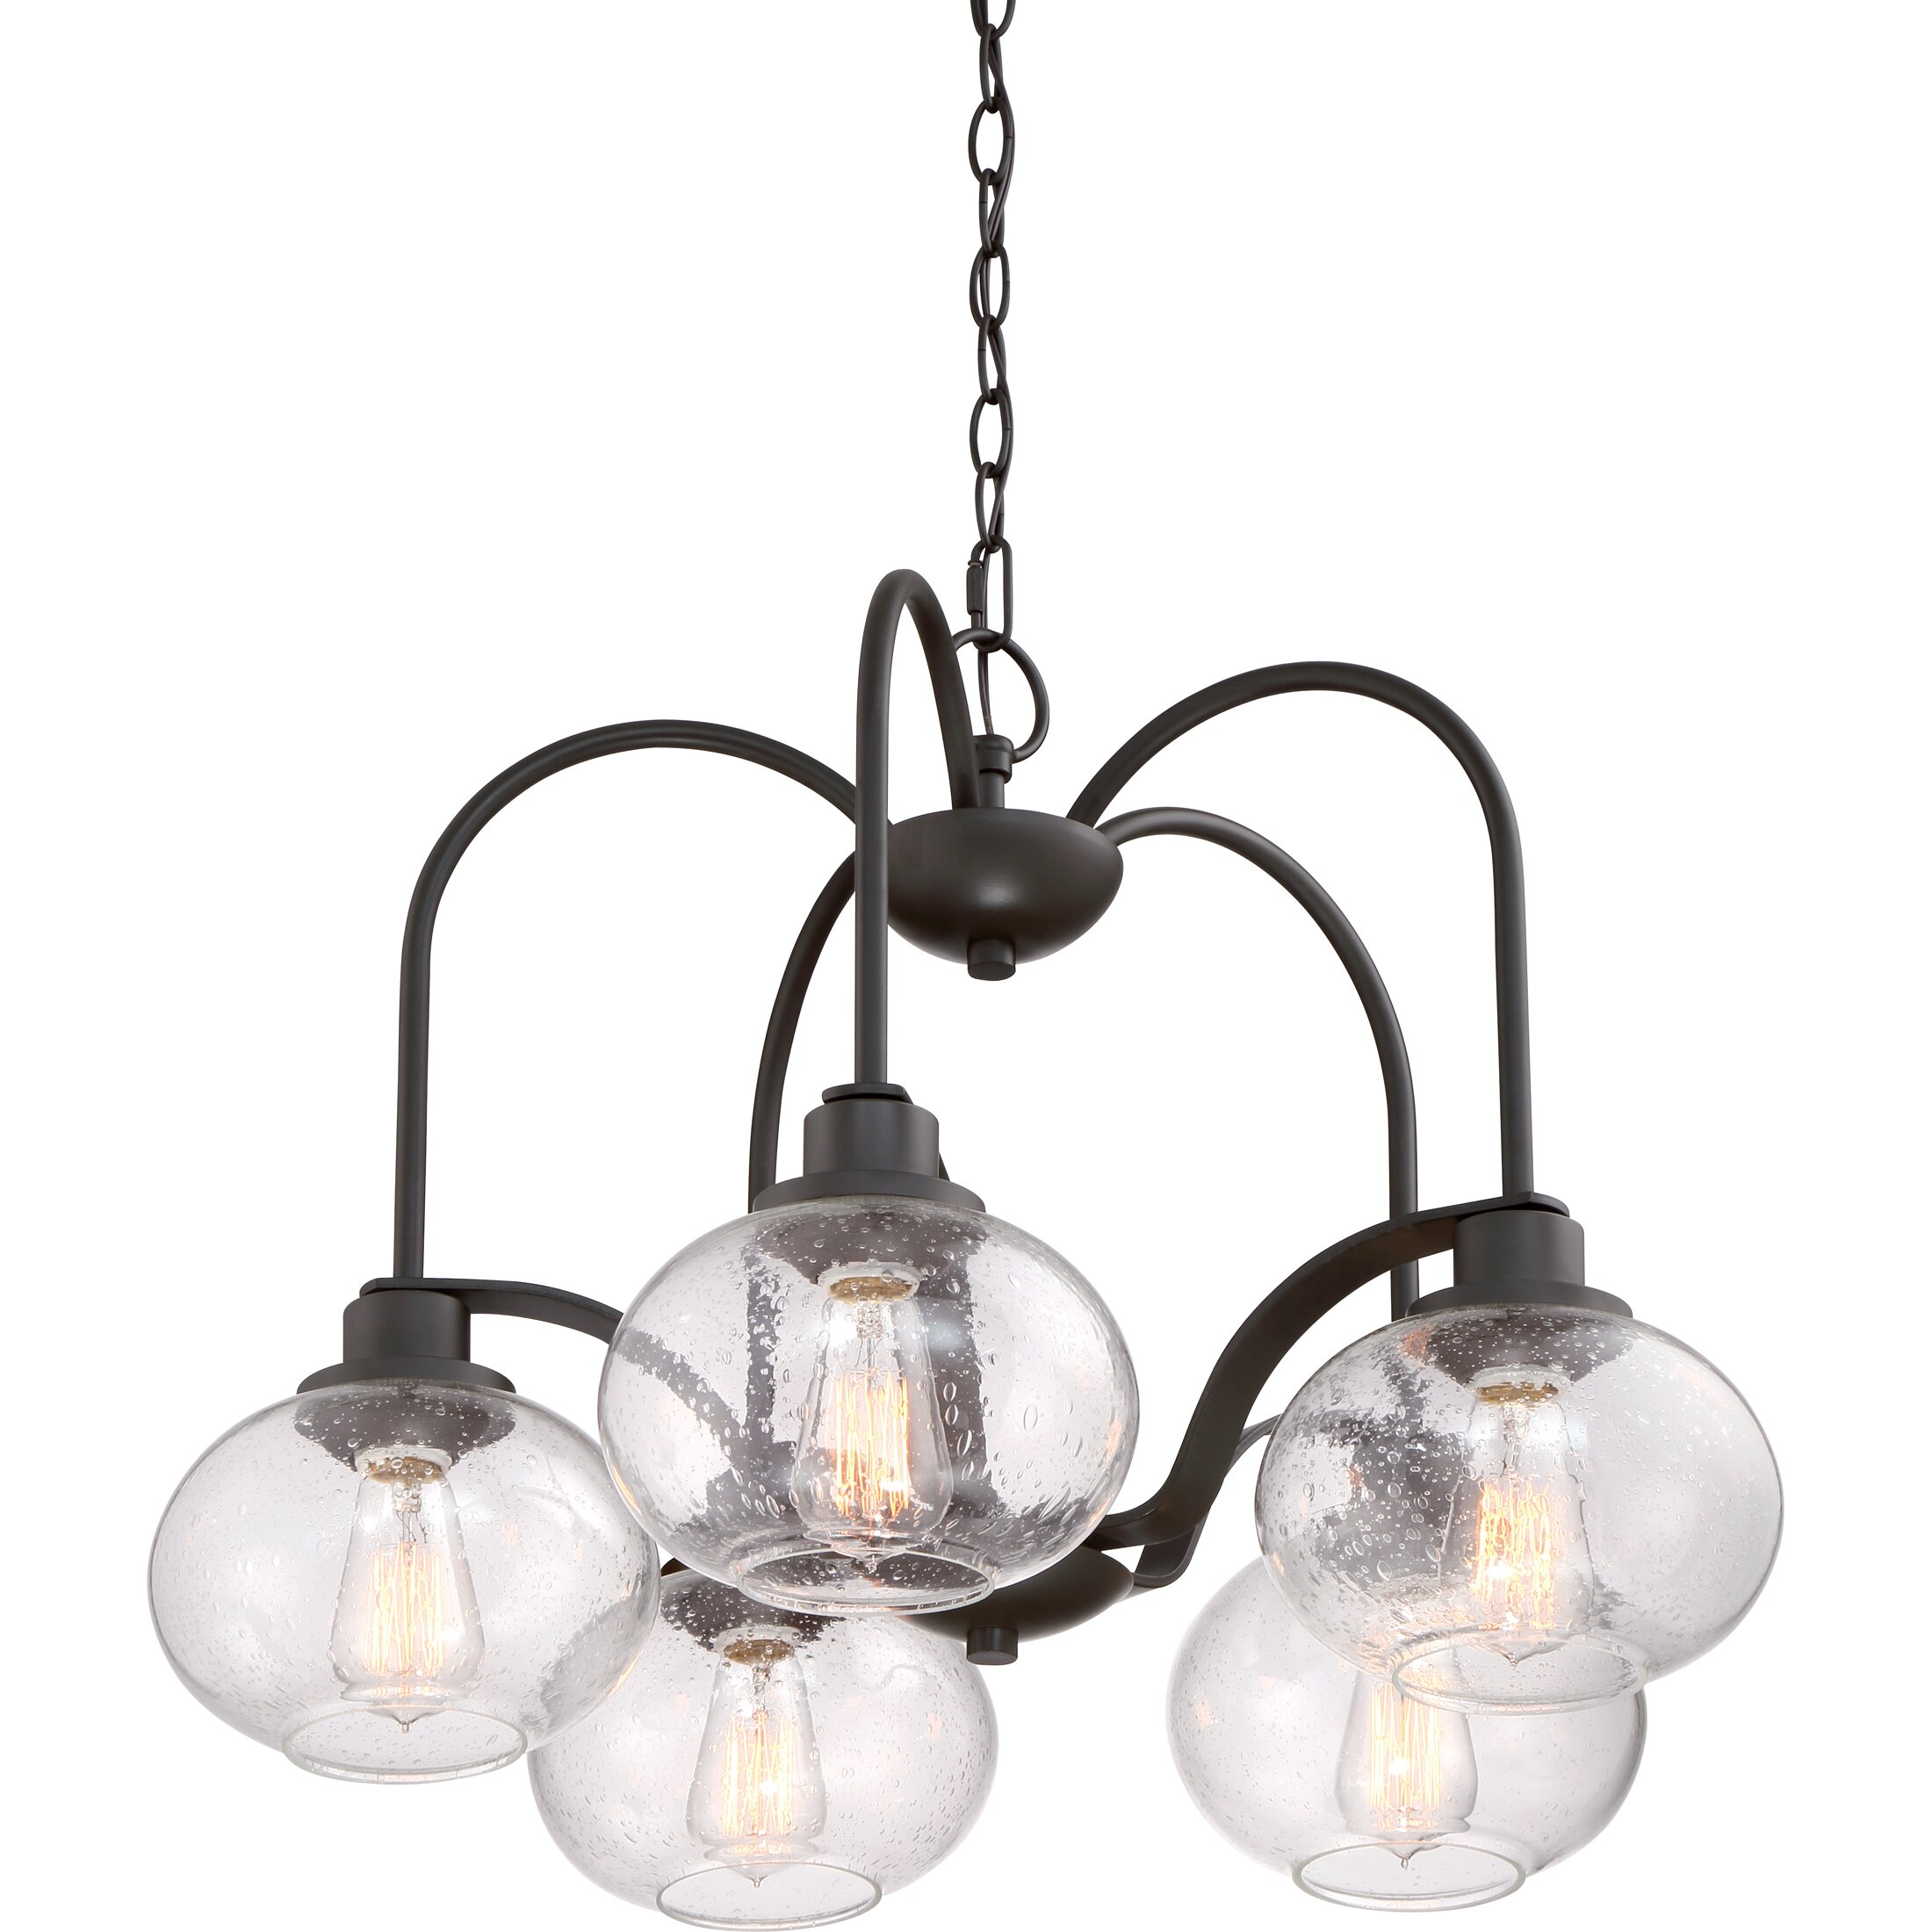 Quoizel Trilogy 5Light Shaded Chandelier Reviews – Quoizel Chandelier